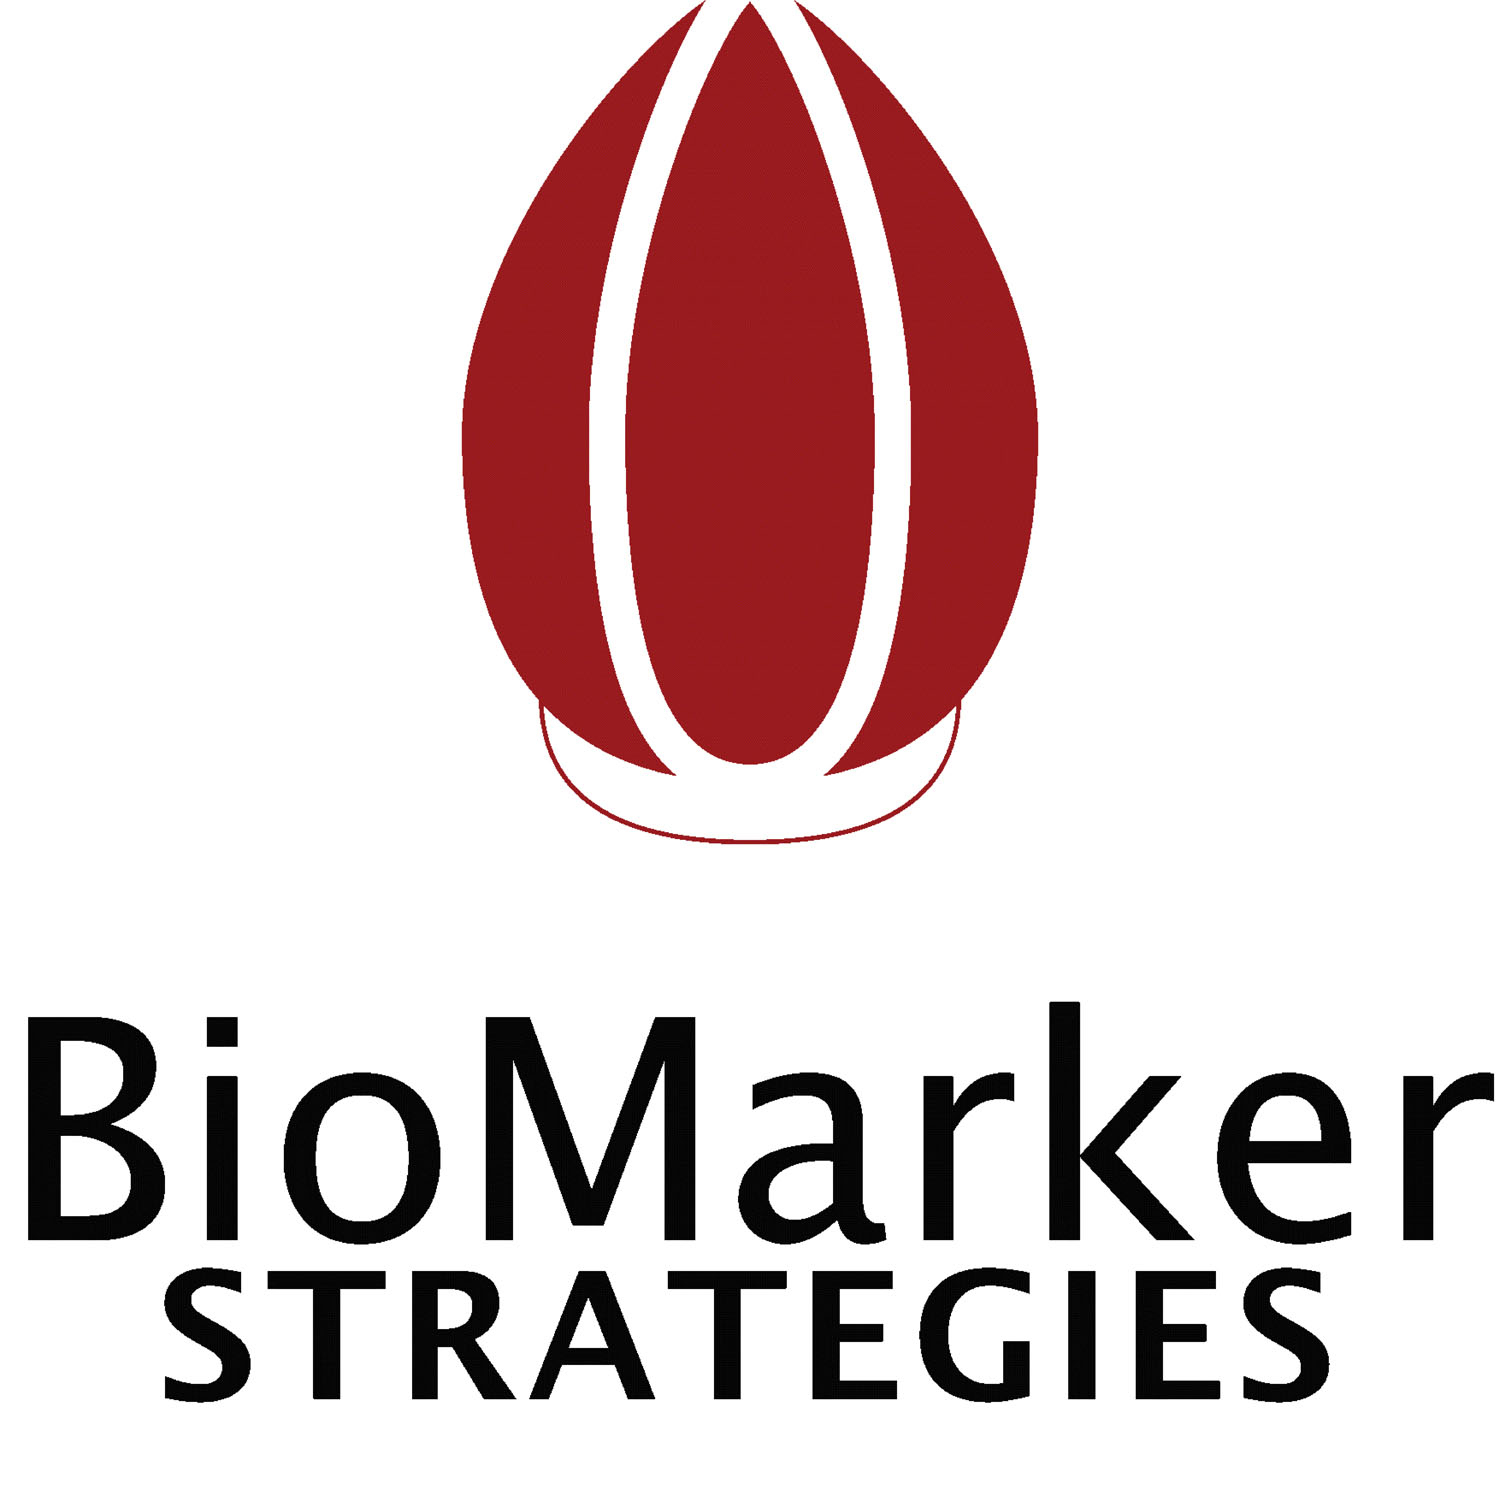 BioMarker Strategies LLC